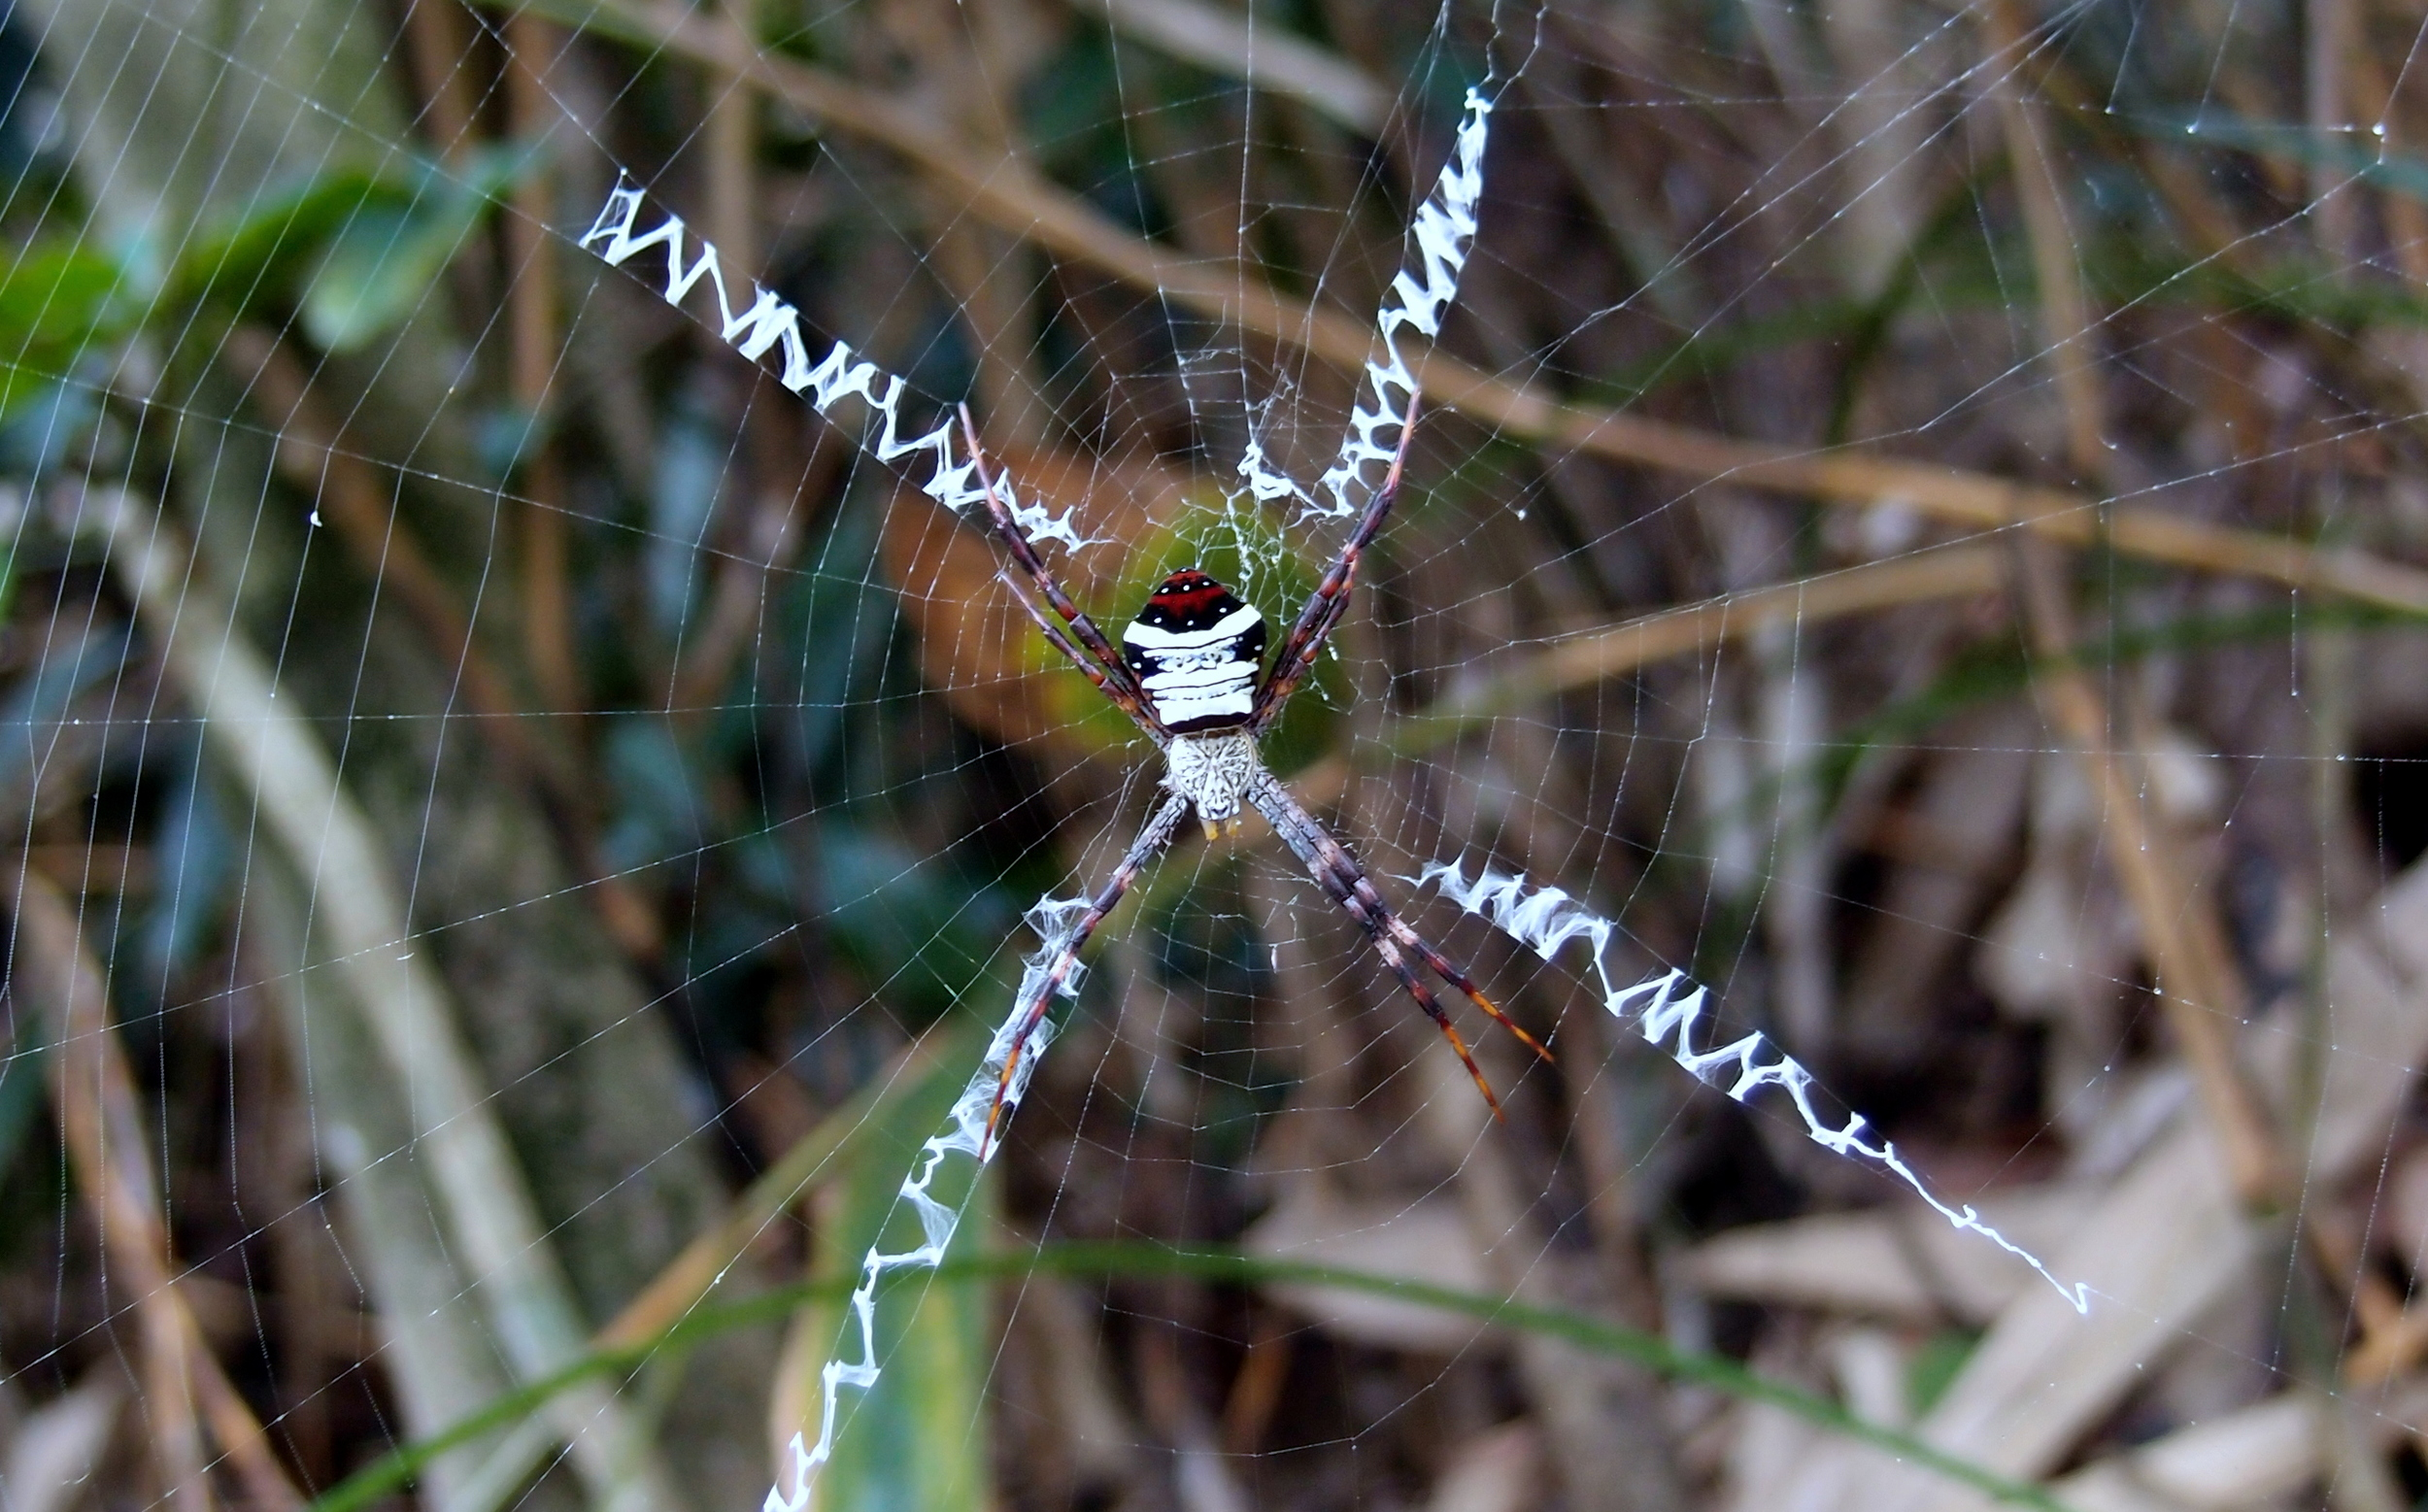 ... and what an amazing web